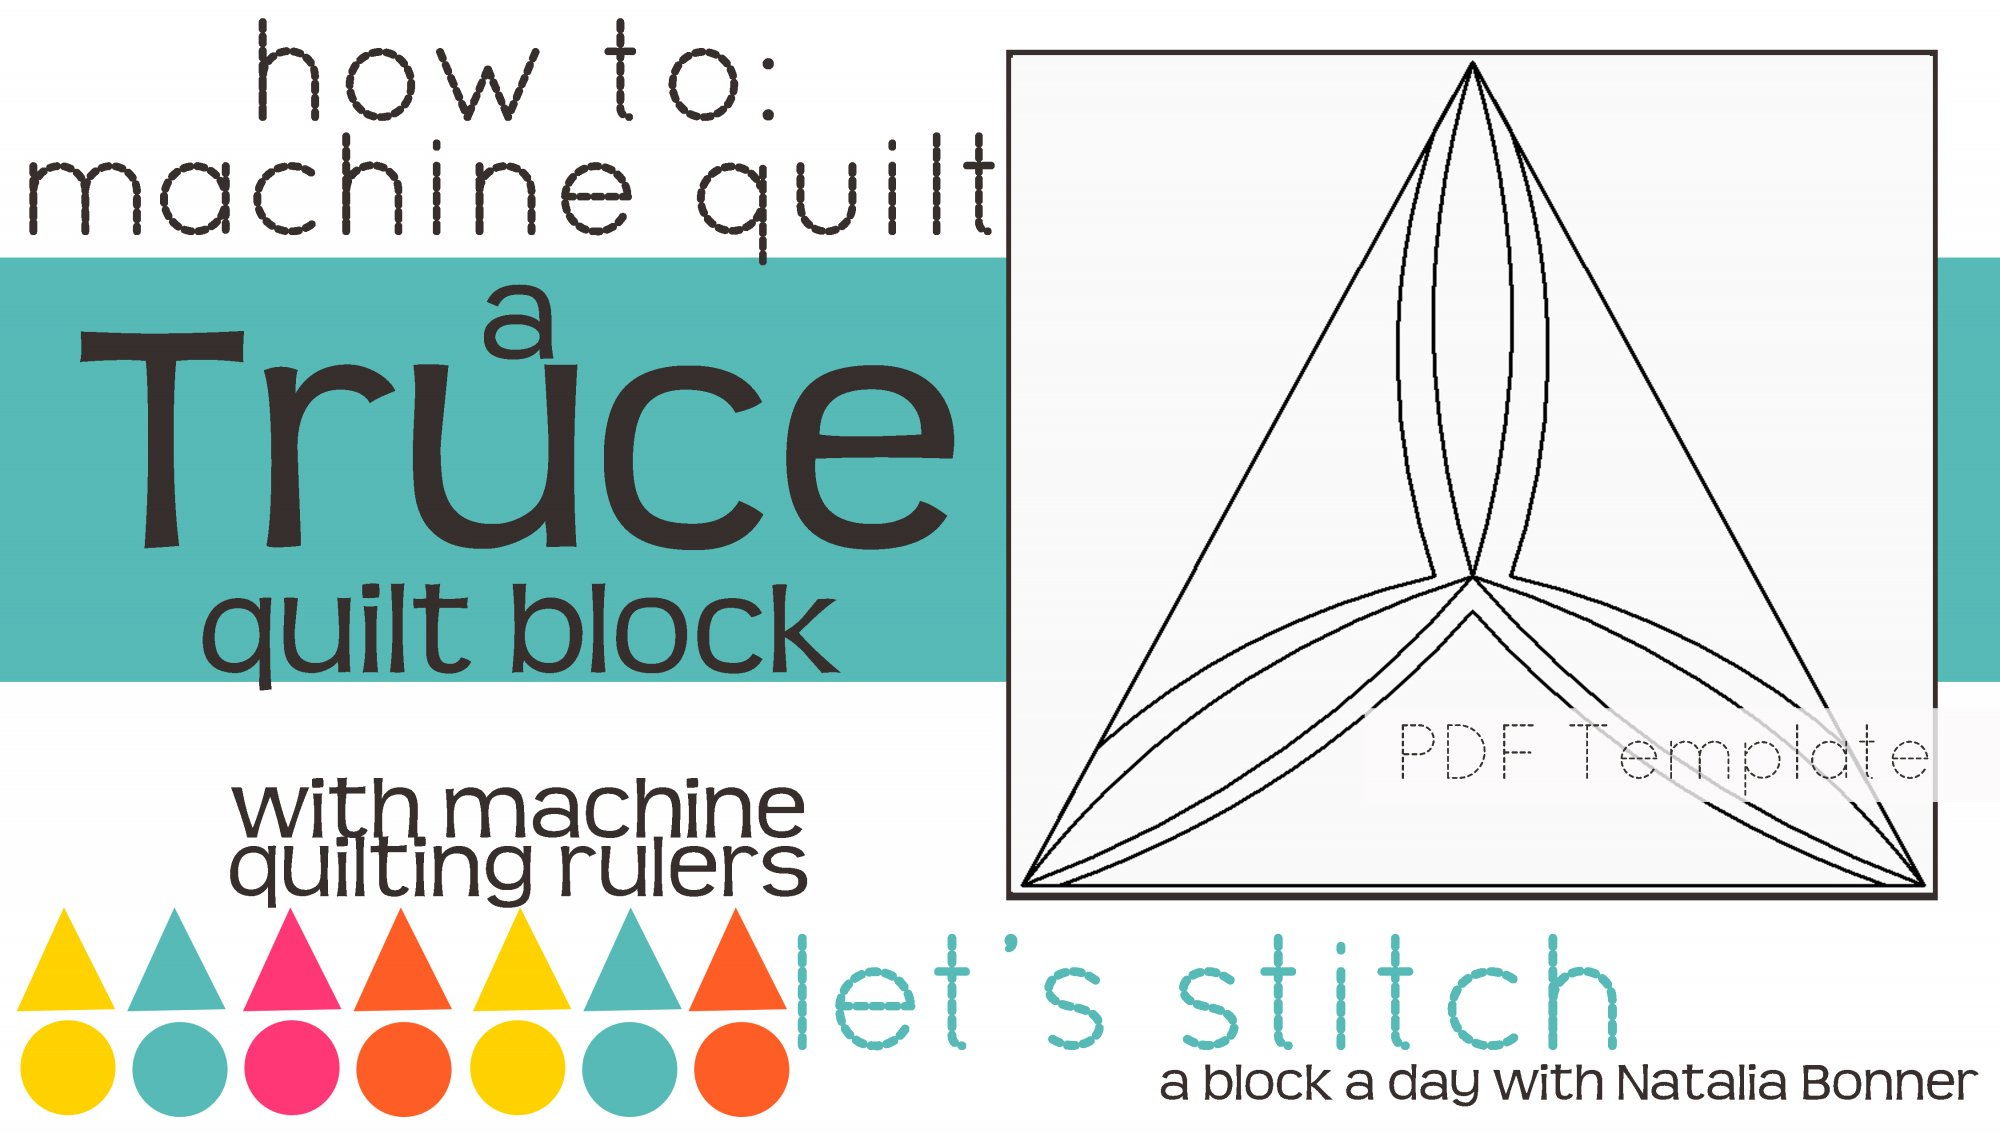 Let's Stitch - A Block a Day With Natalia Bonner - PDF - Truce